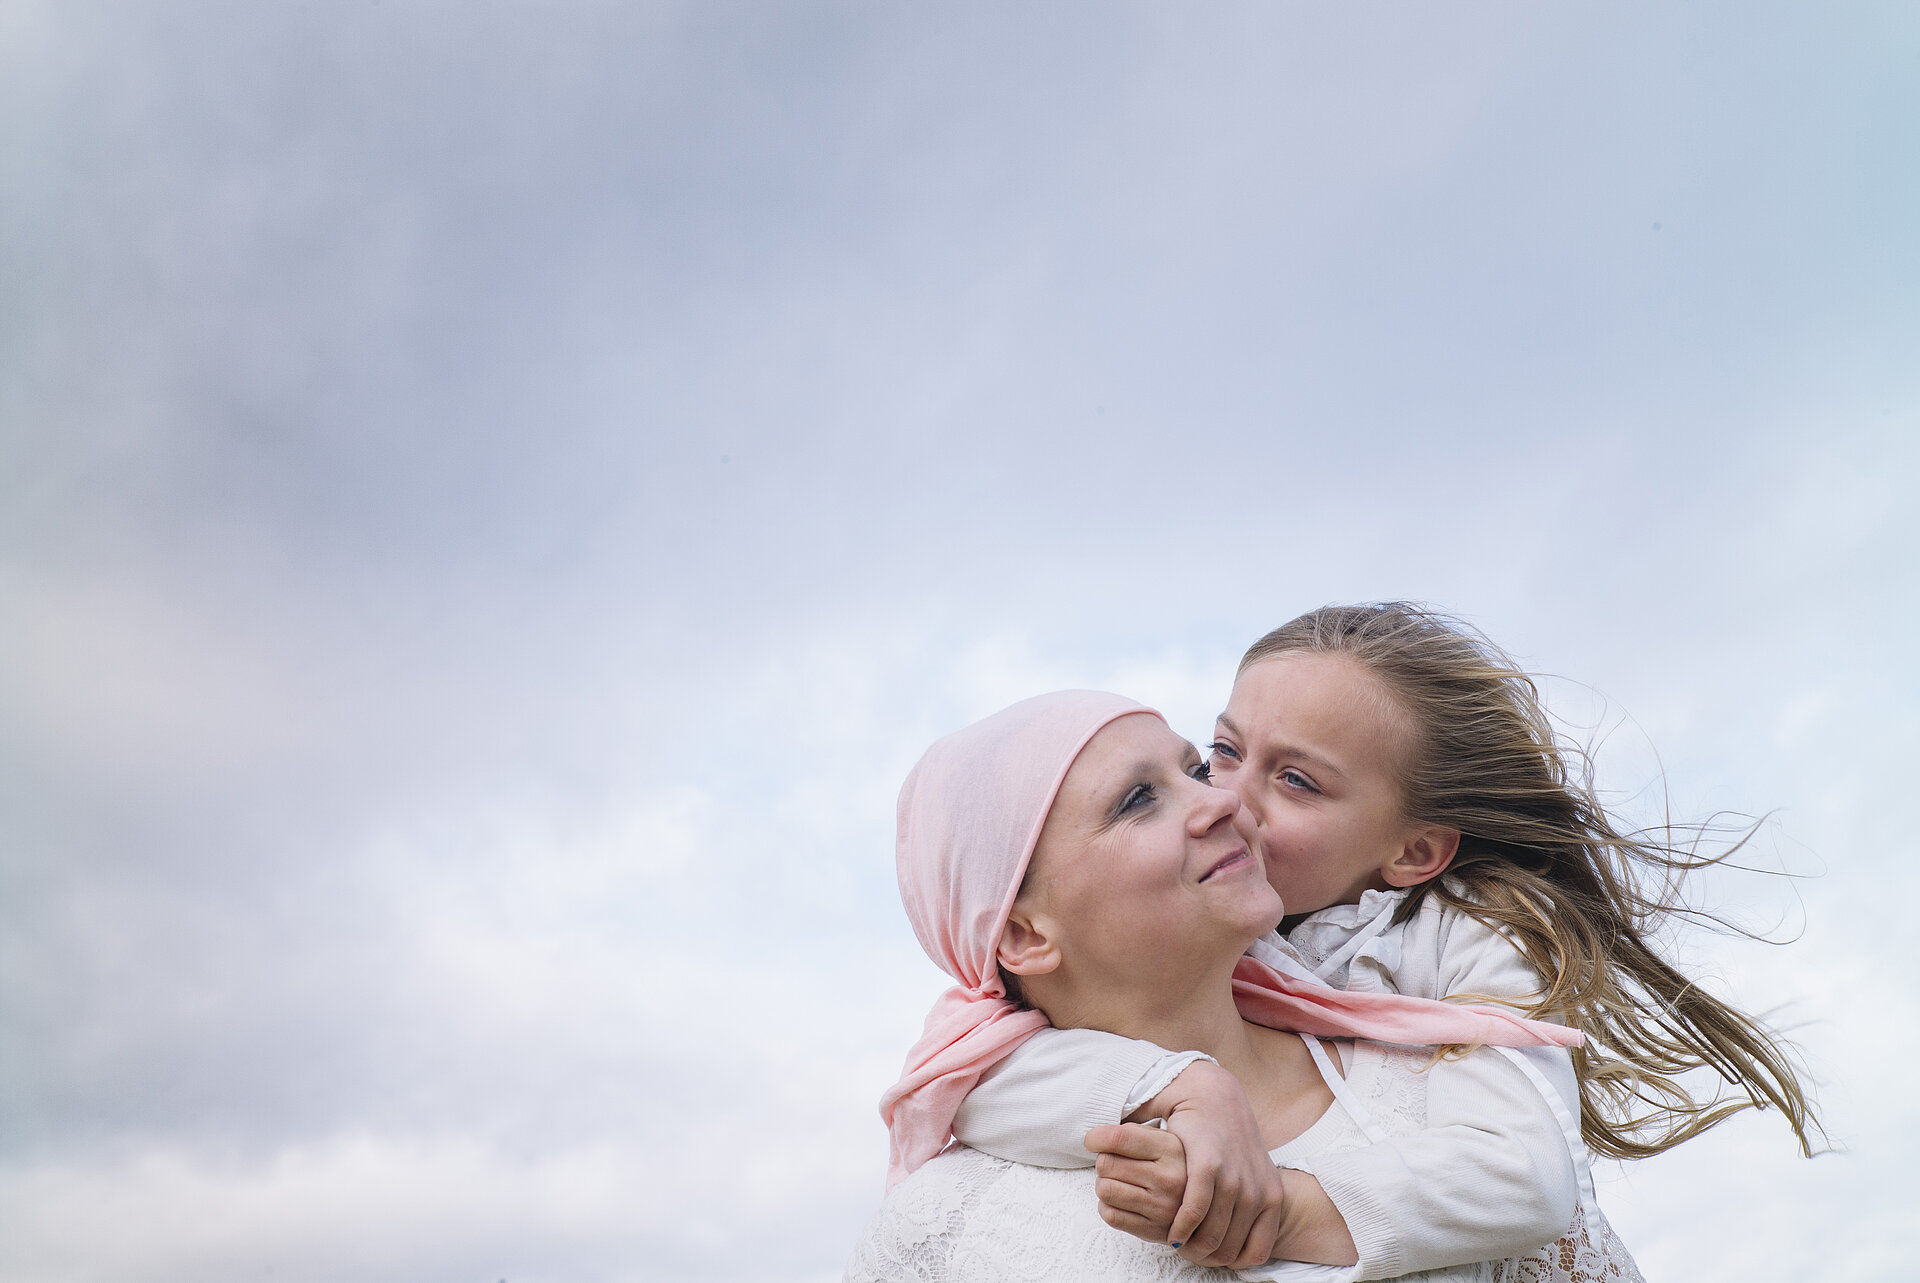 15-20% of all breast cancer is hereditary